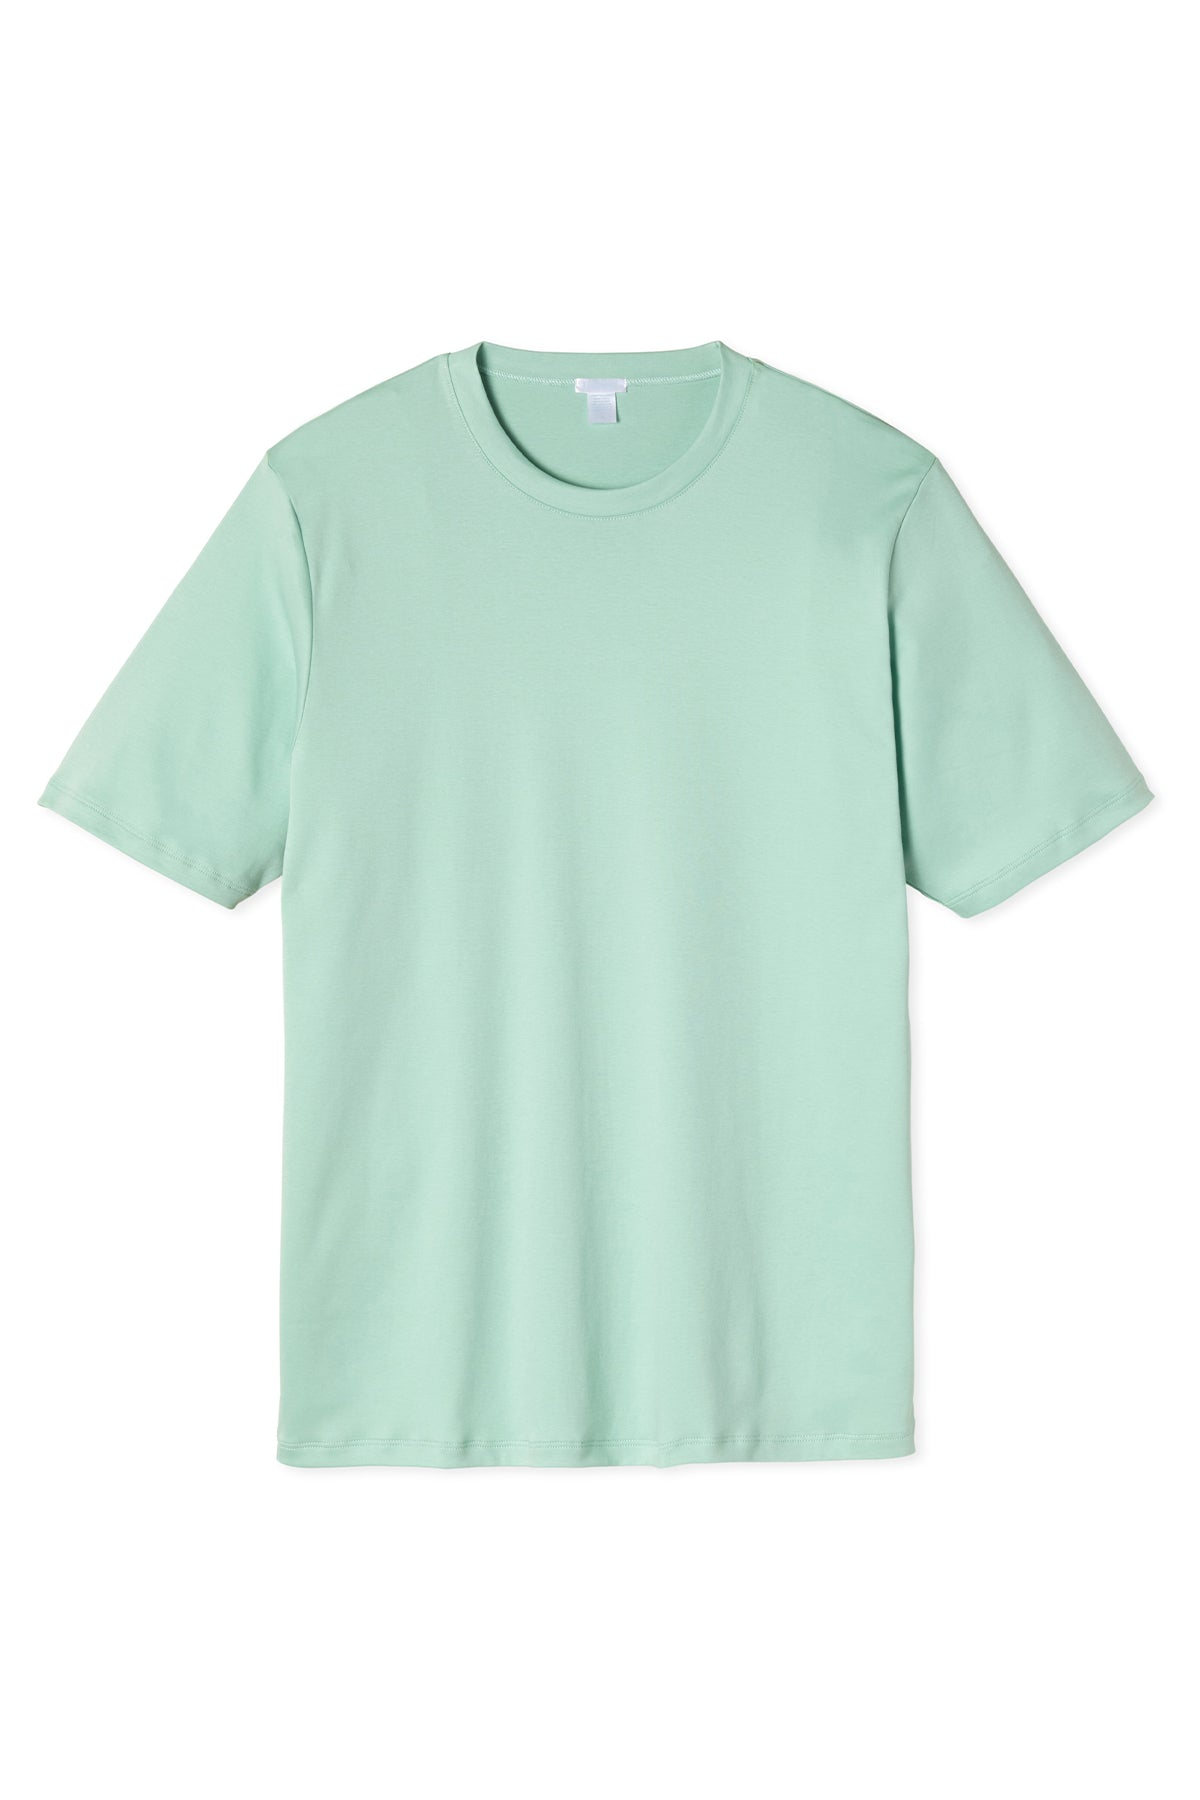 Men's Short Sleeve Pima Tee in Parisian Green